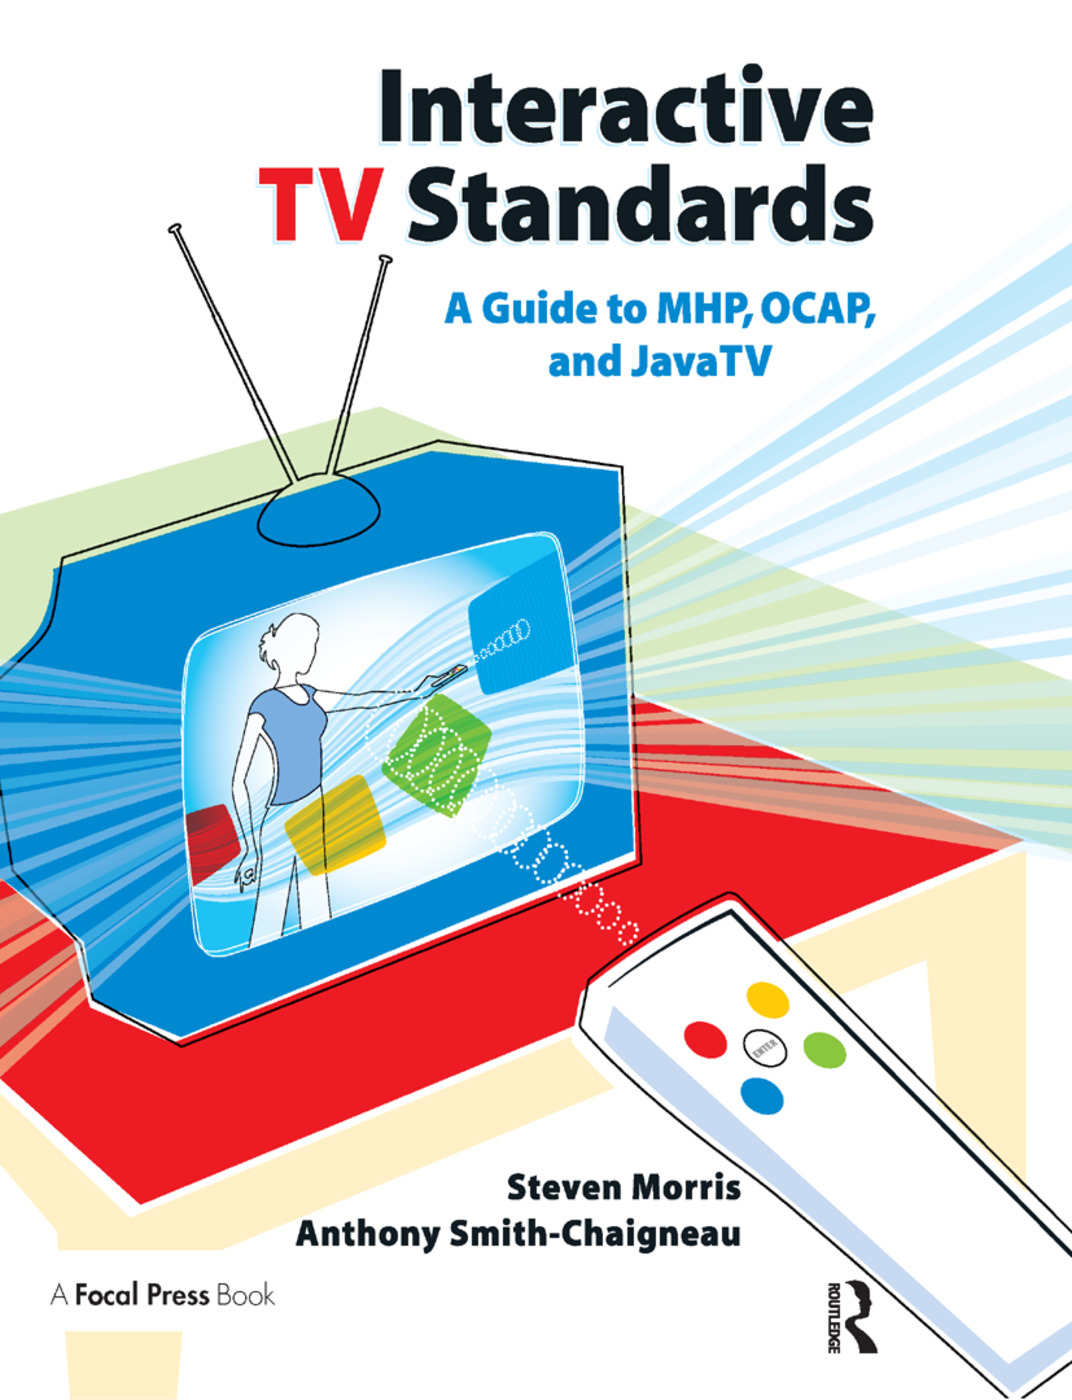 Interactive TV Standards: A Guide to MHP, OCAP, and JavaTV book cover